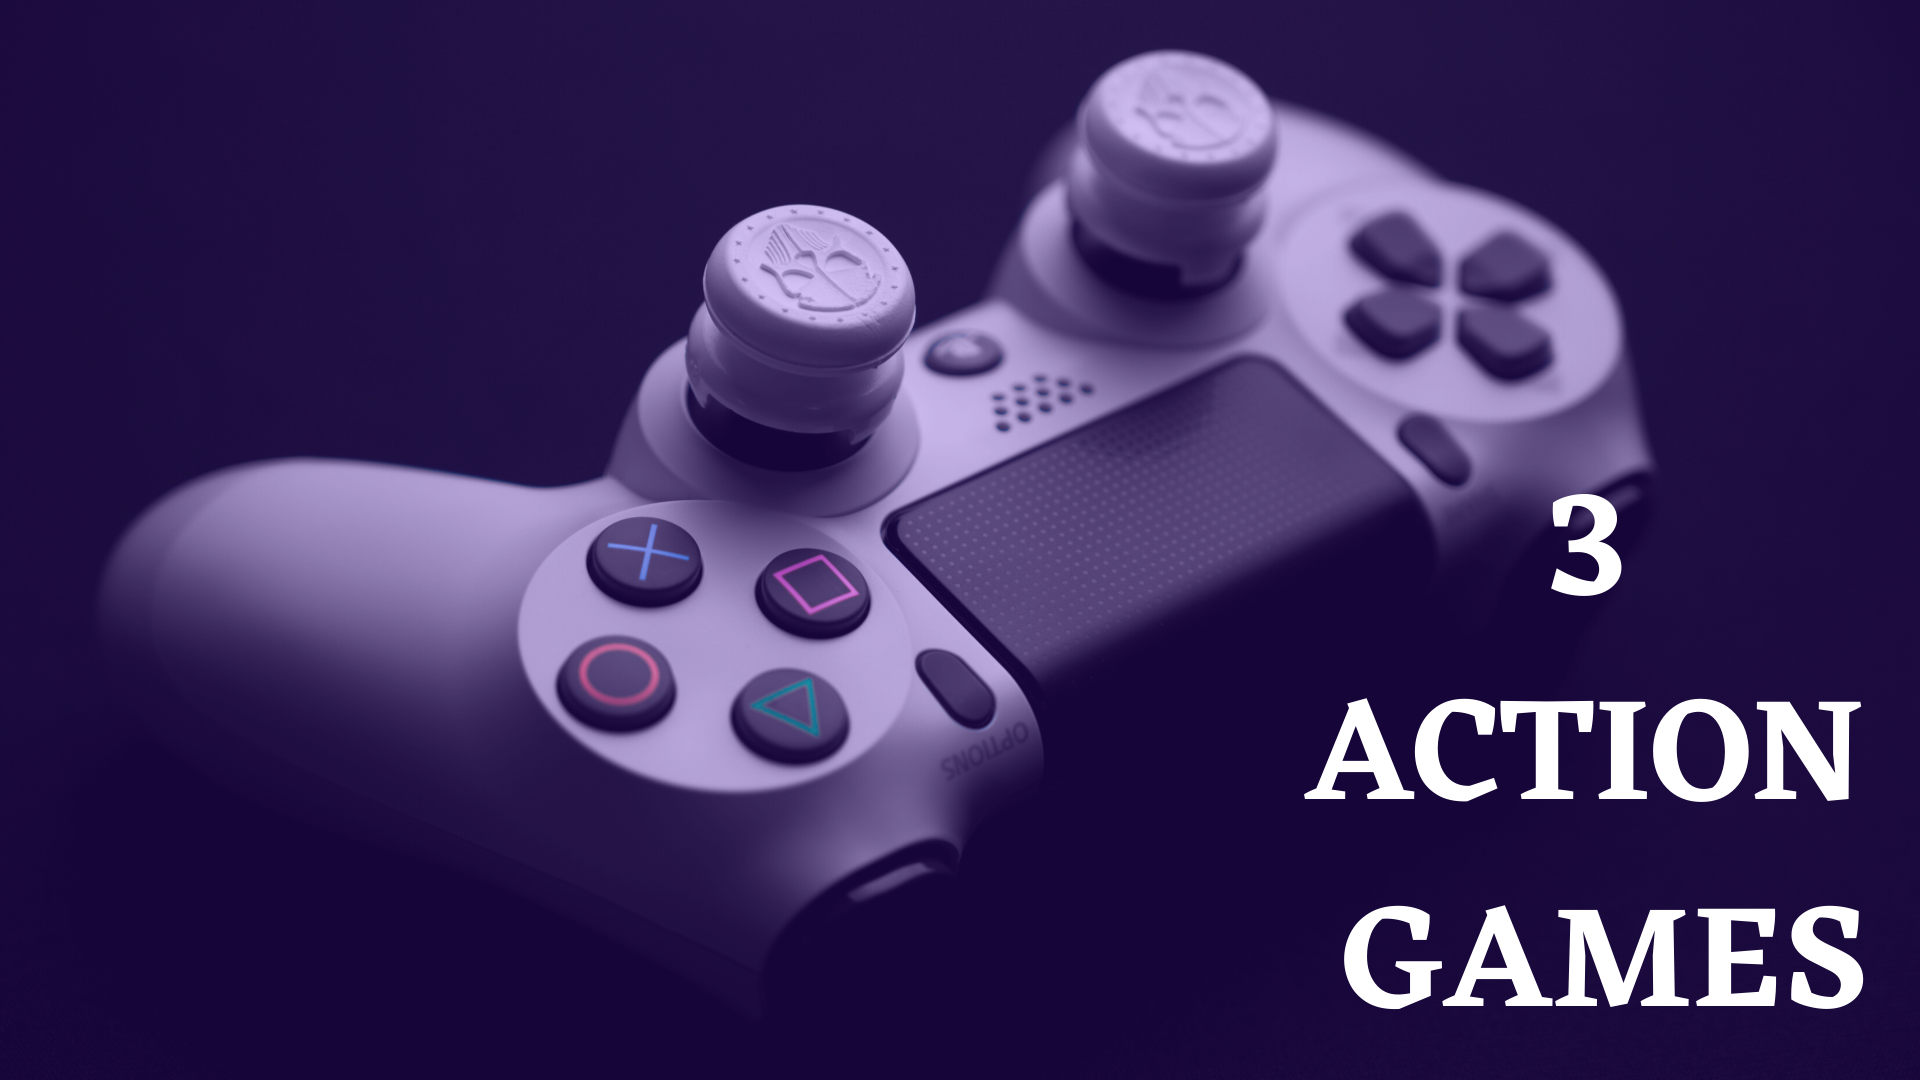 3 ACTION GAMES YOU PLAY